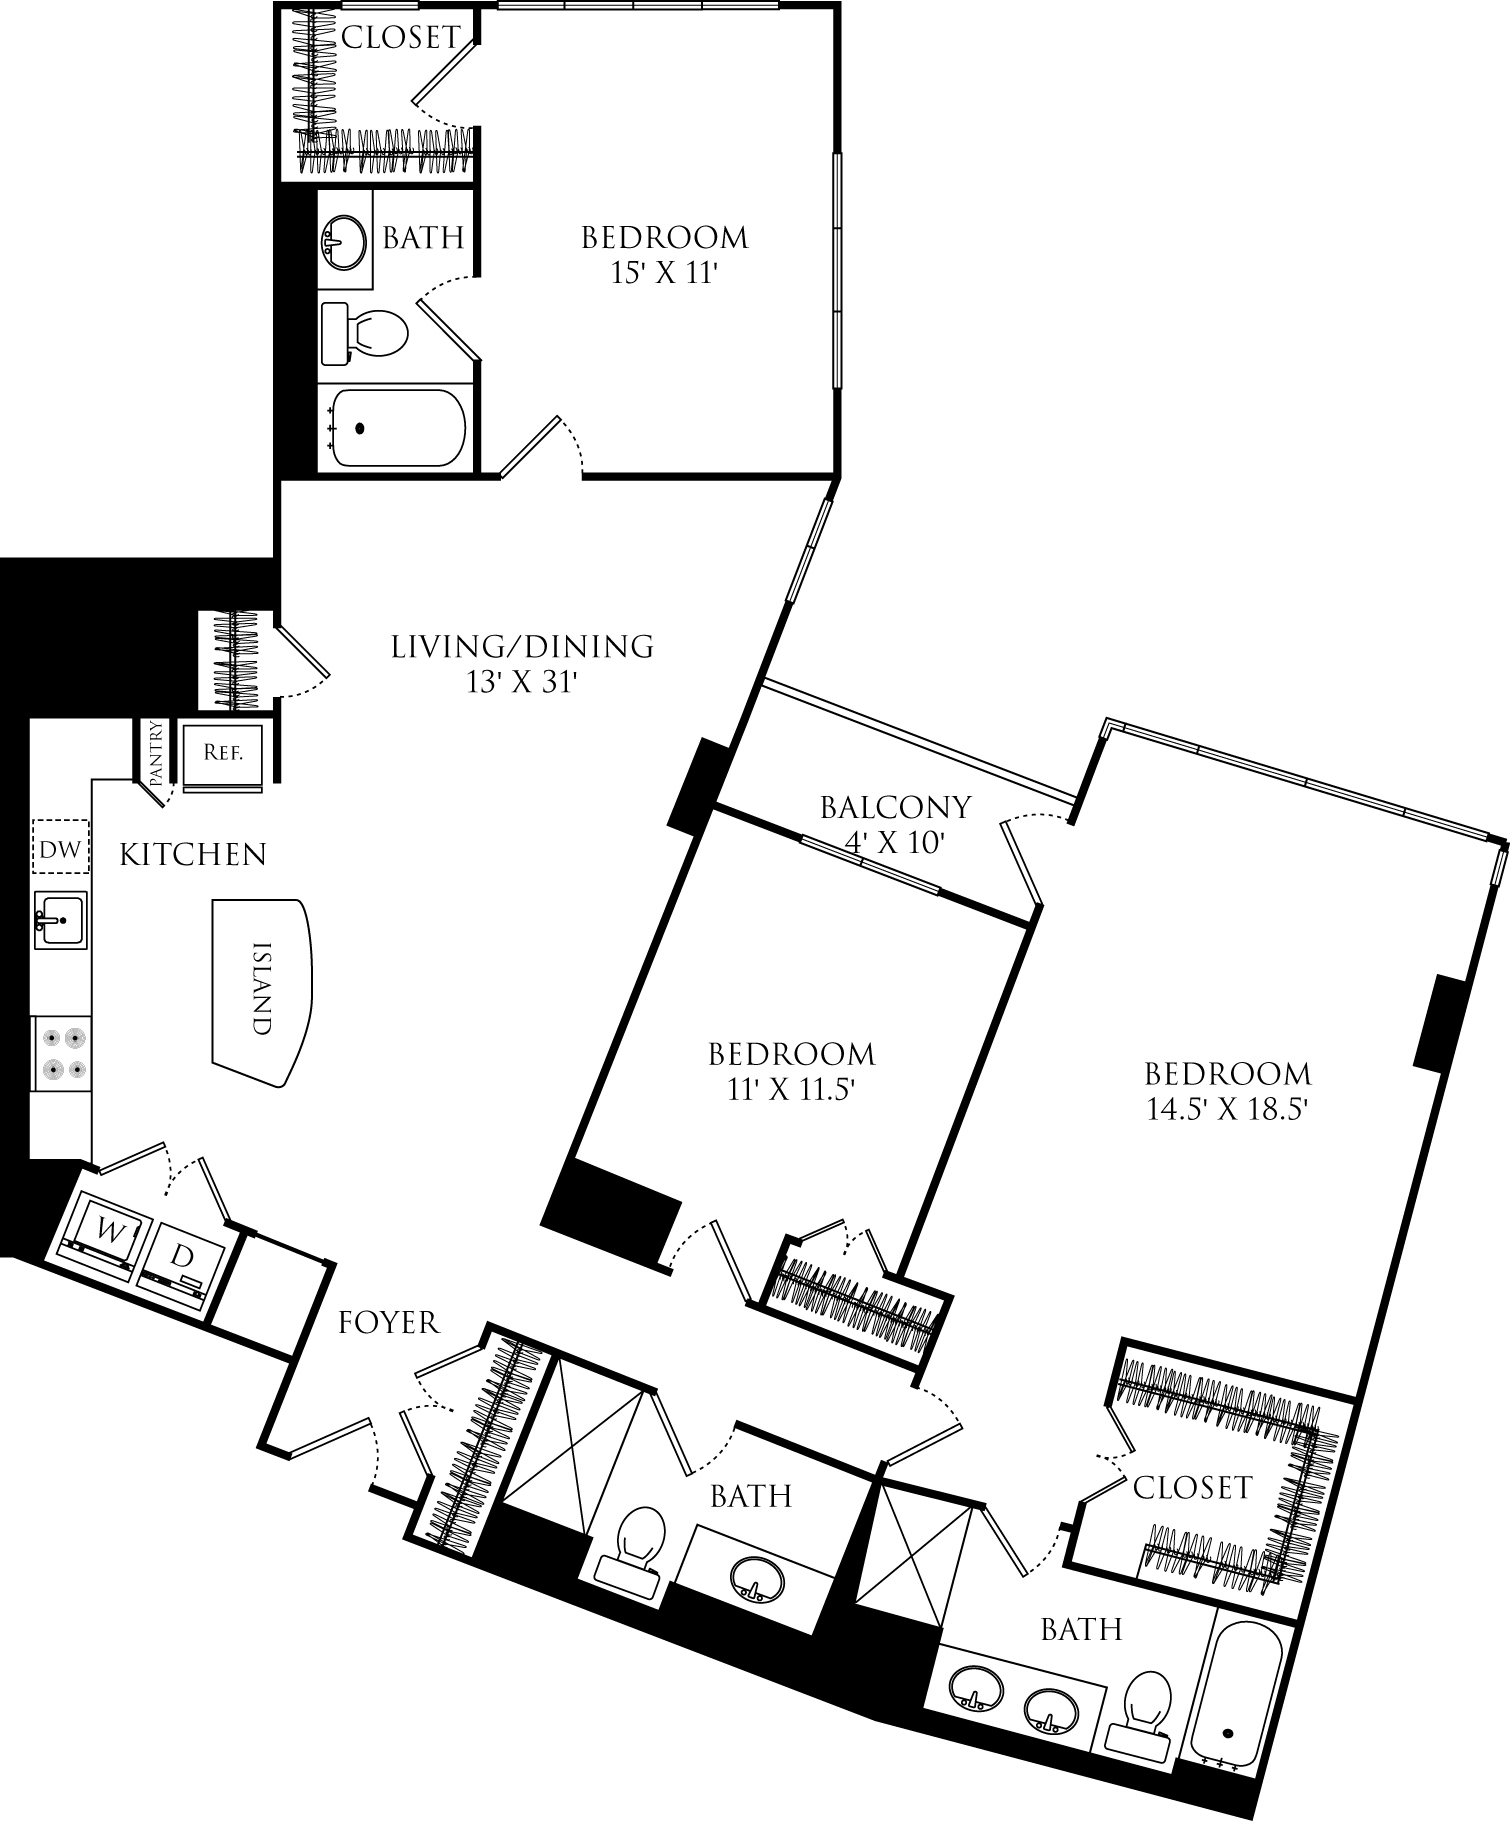 C3G floor plan with 3 beds, 3 baths and is 1641 square feet